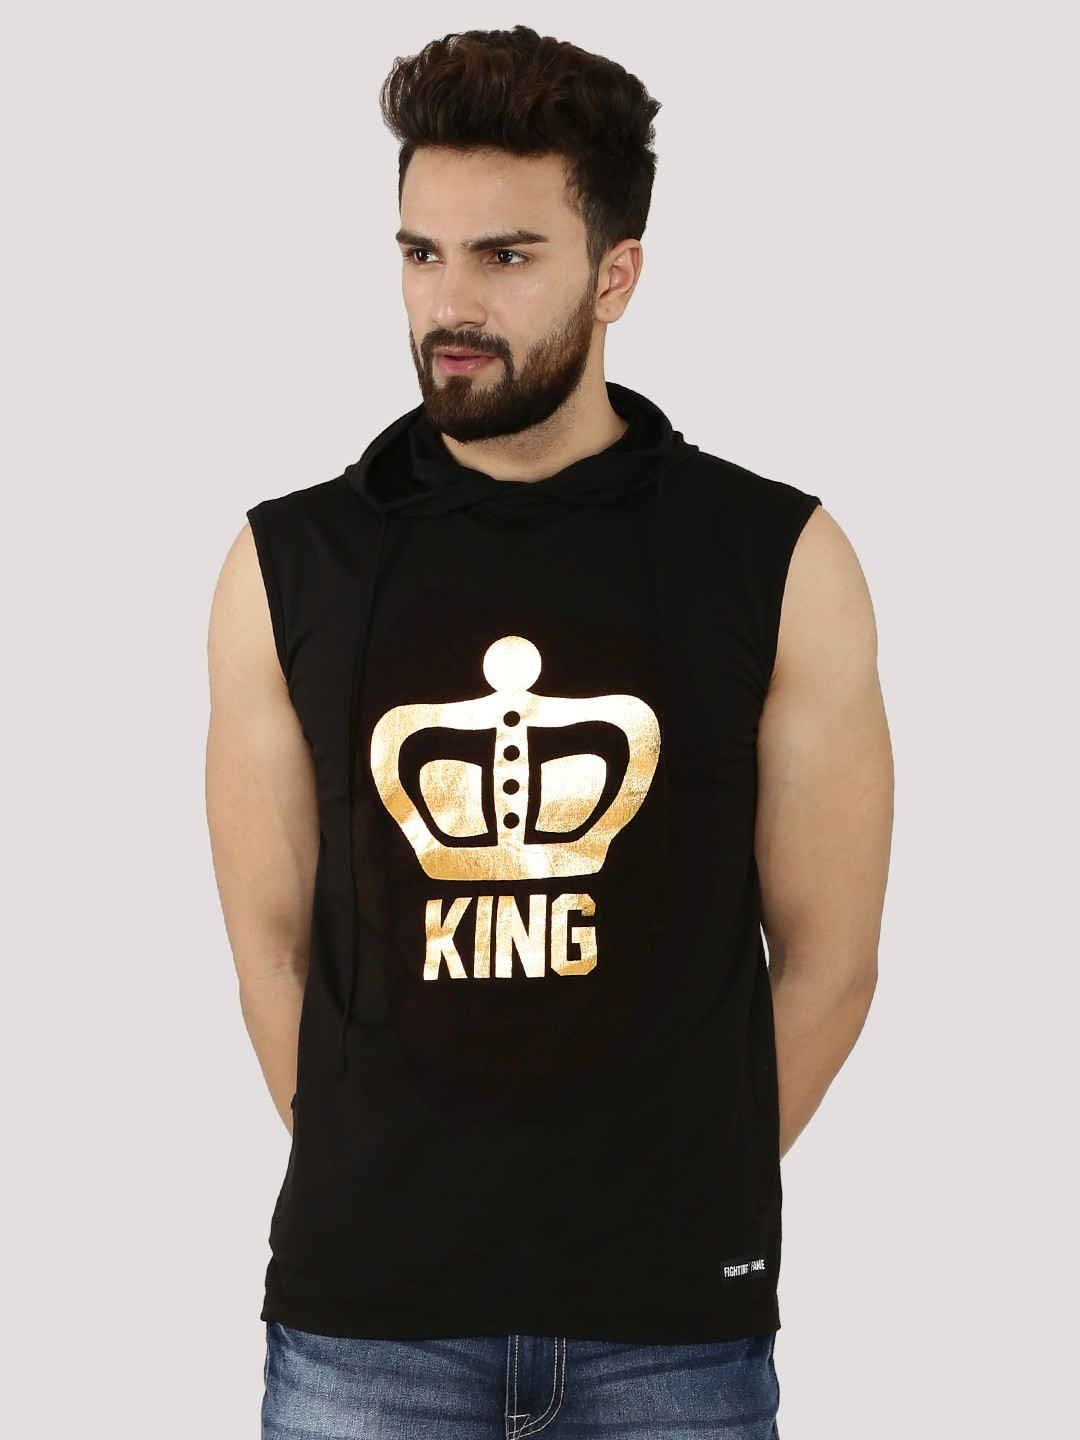 KING Black Sleeveless T-Shirt With Hood - Fighting Fame  - 1